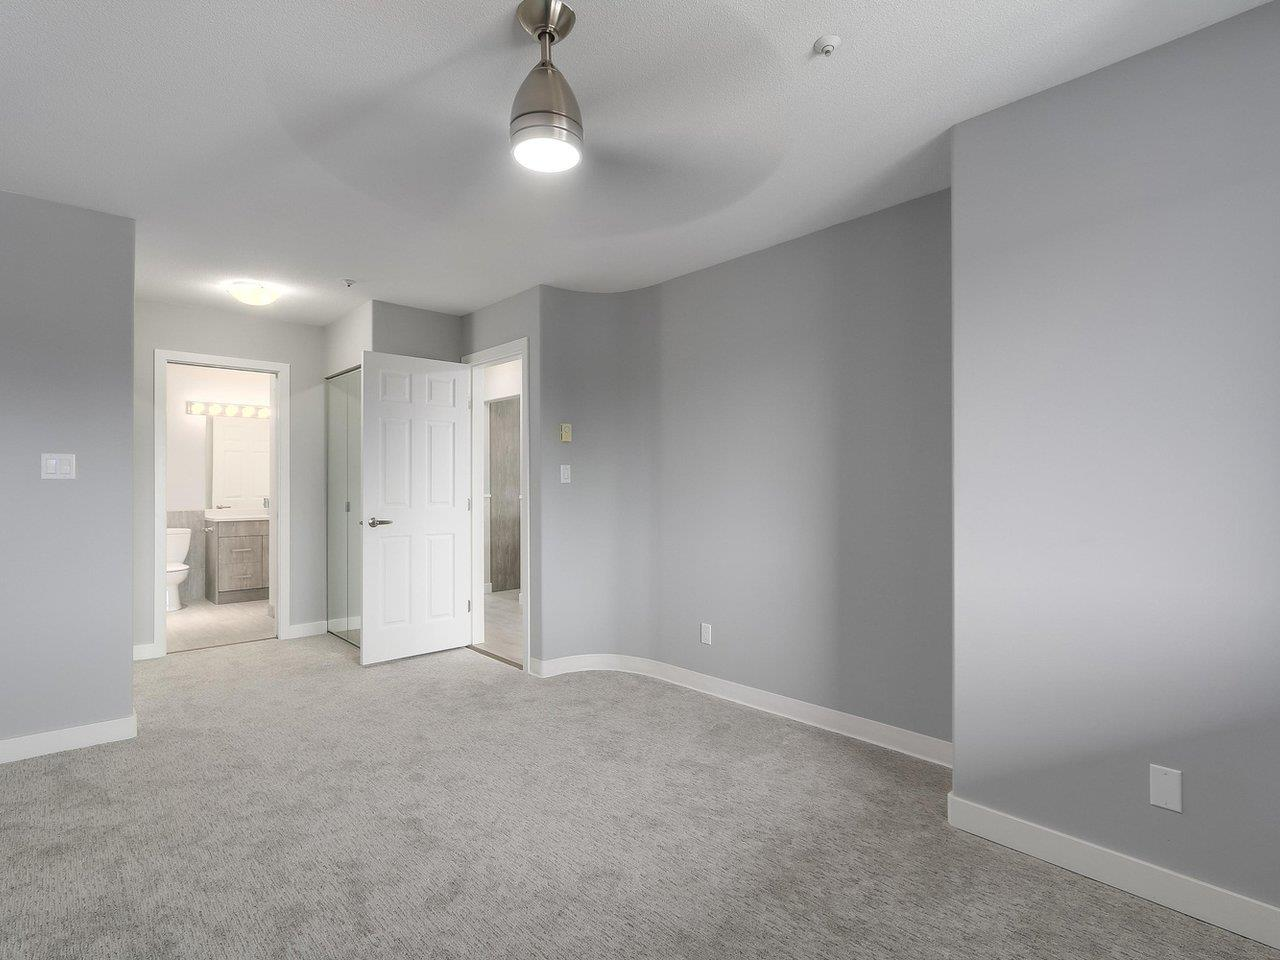 Condo Apartment at 312 4893 CLARENDON STREET, Unit 312, Vancouver East, British Columbia. Image 14